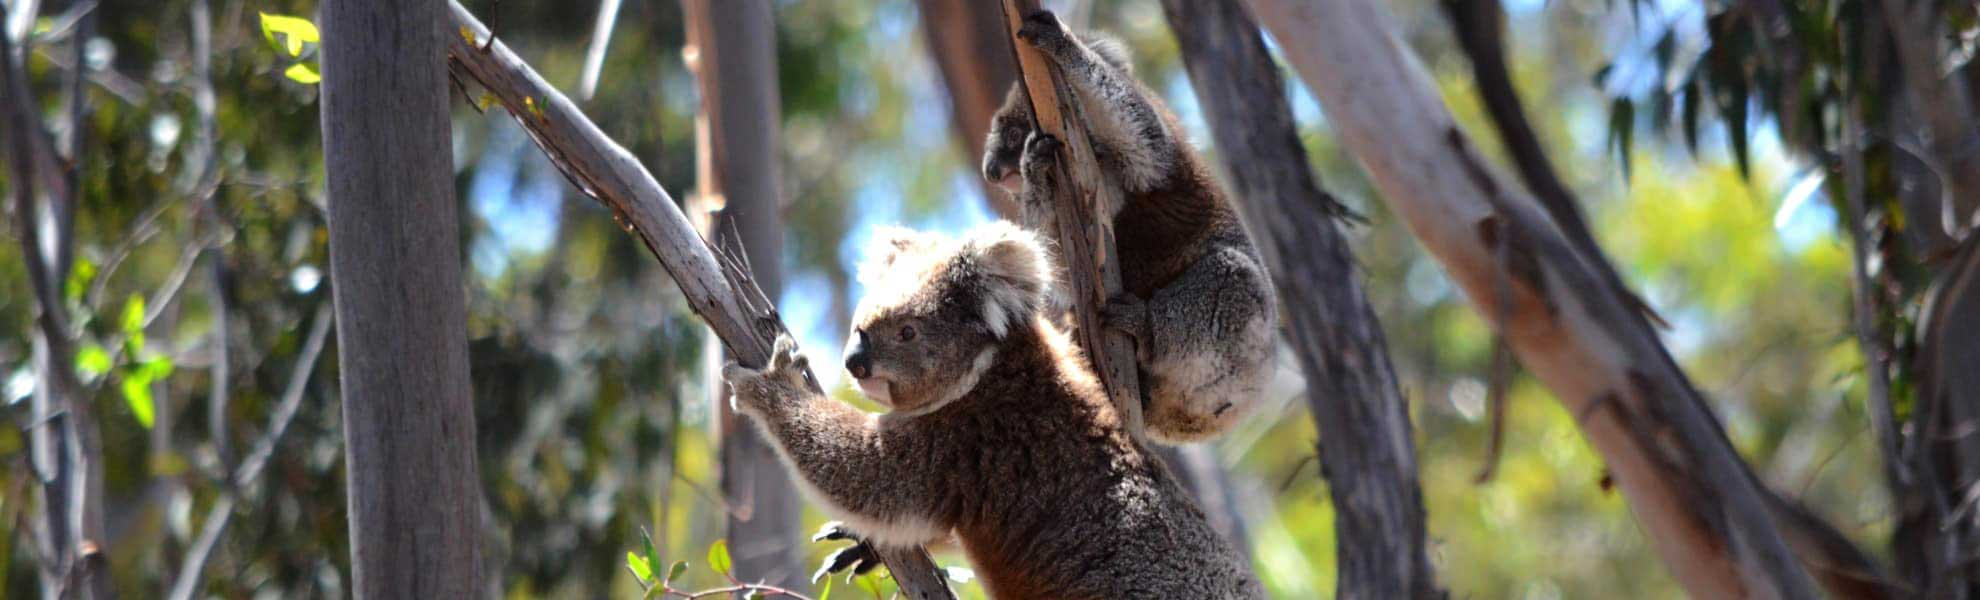 Koala charity groups wild koala day